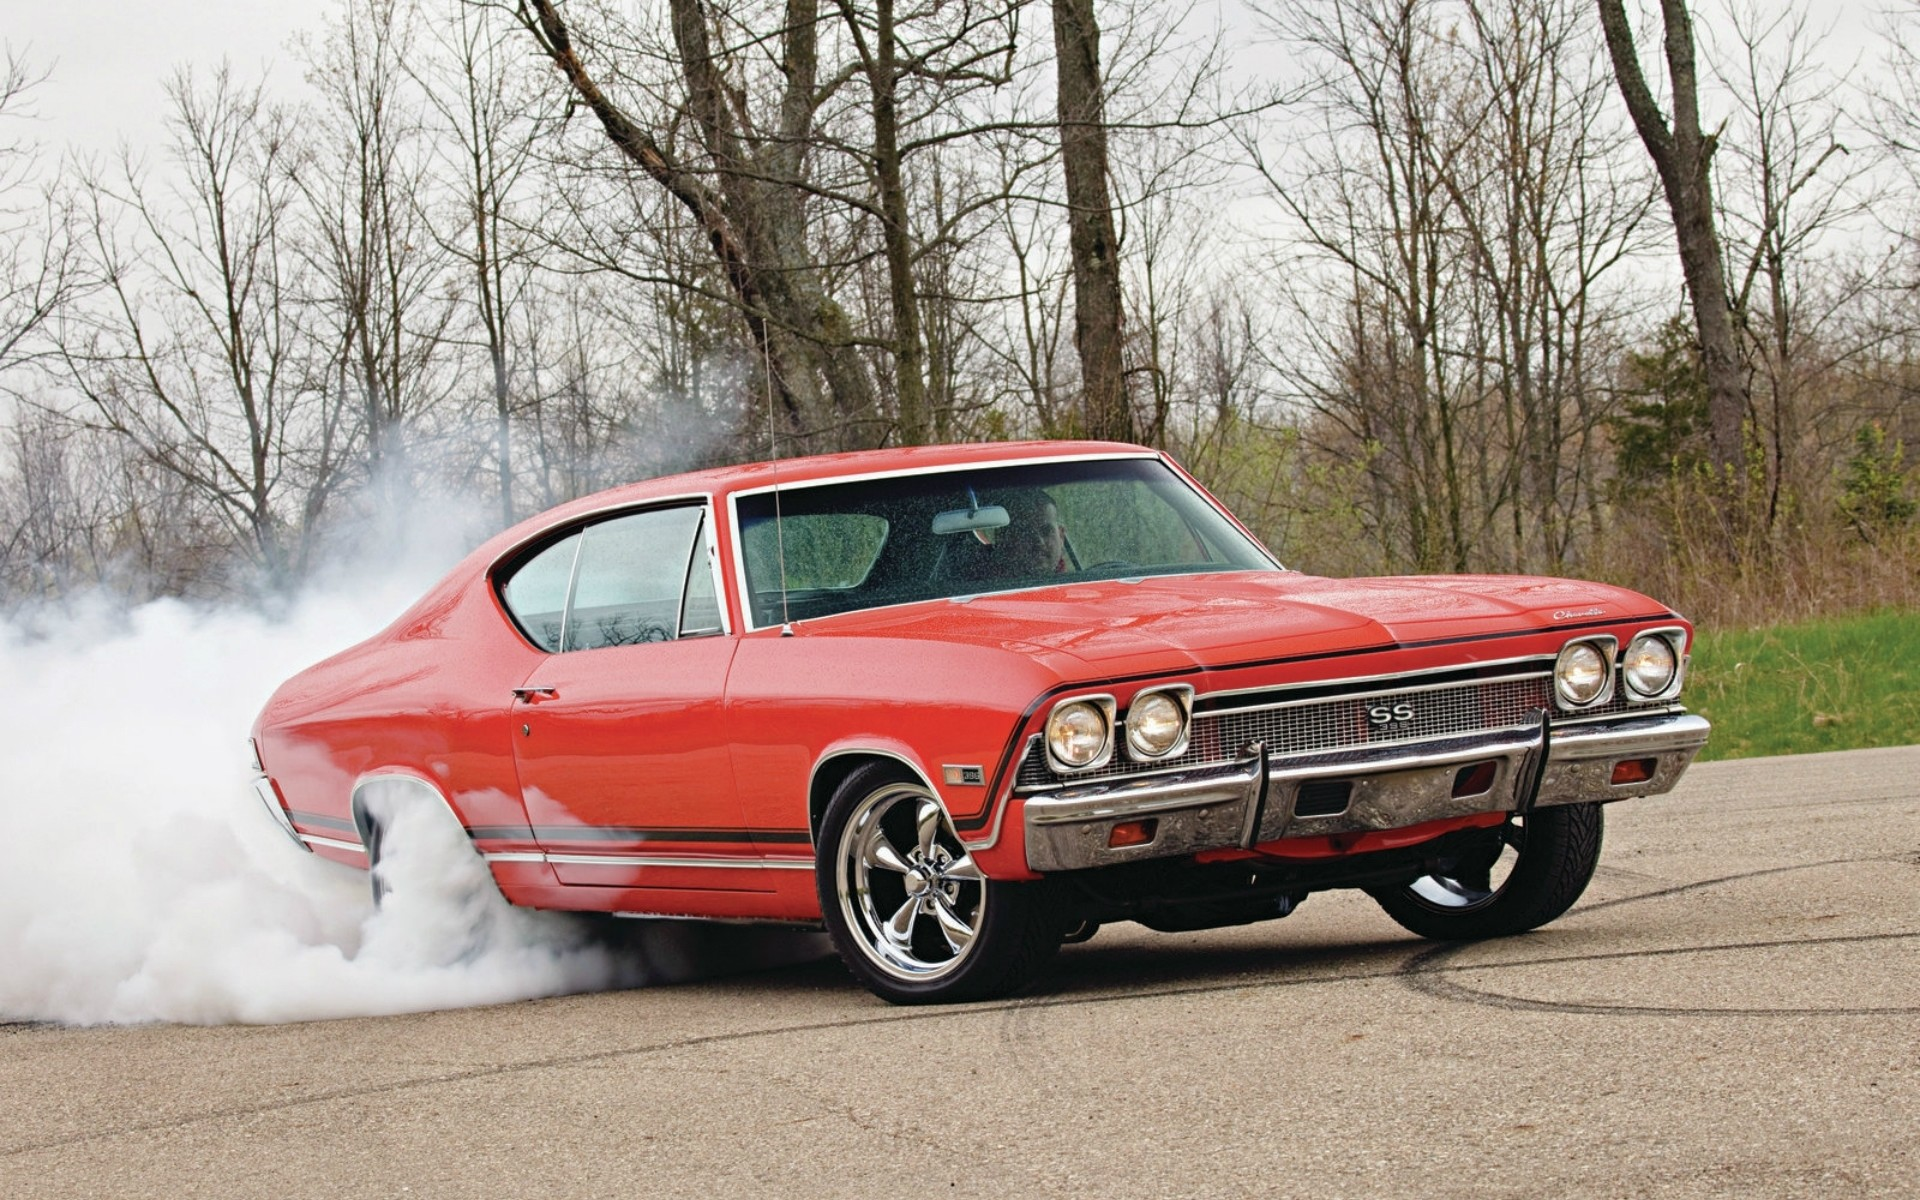 Chevrolet Chevelle SS 1968 burnout roads muscle cars hot rod smoke wallpaper  | | 32311 | WallpaperUP